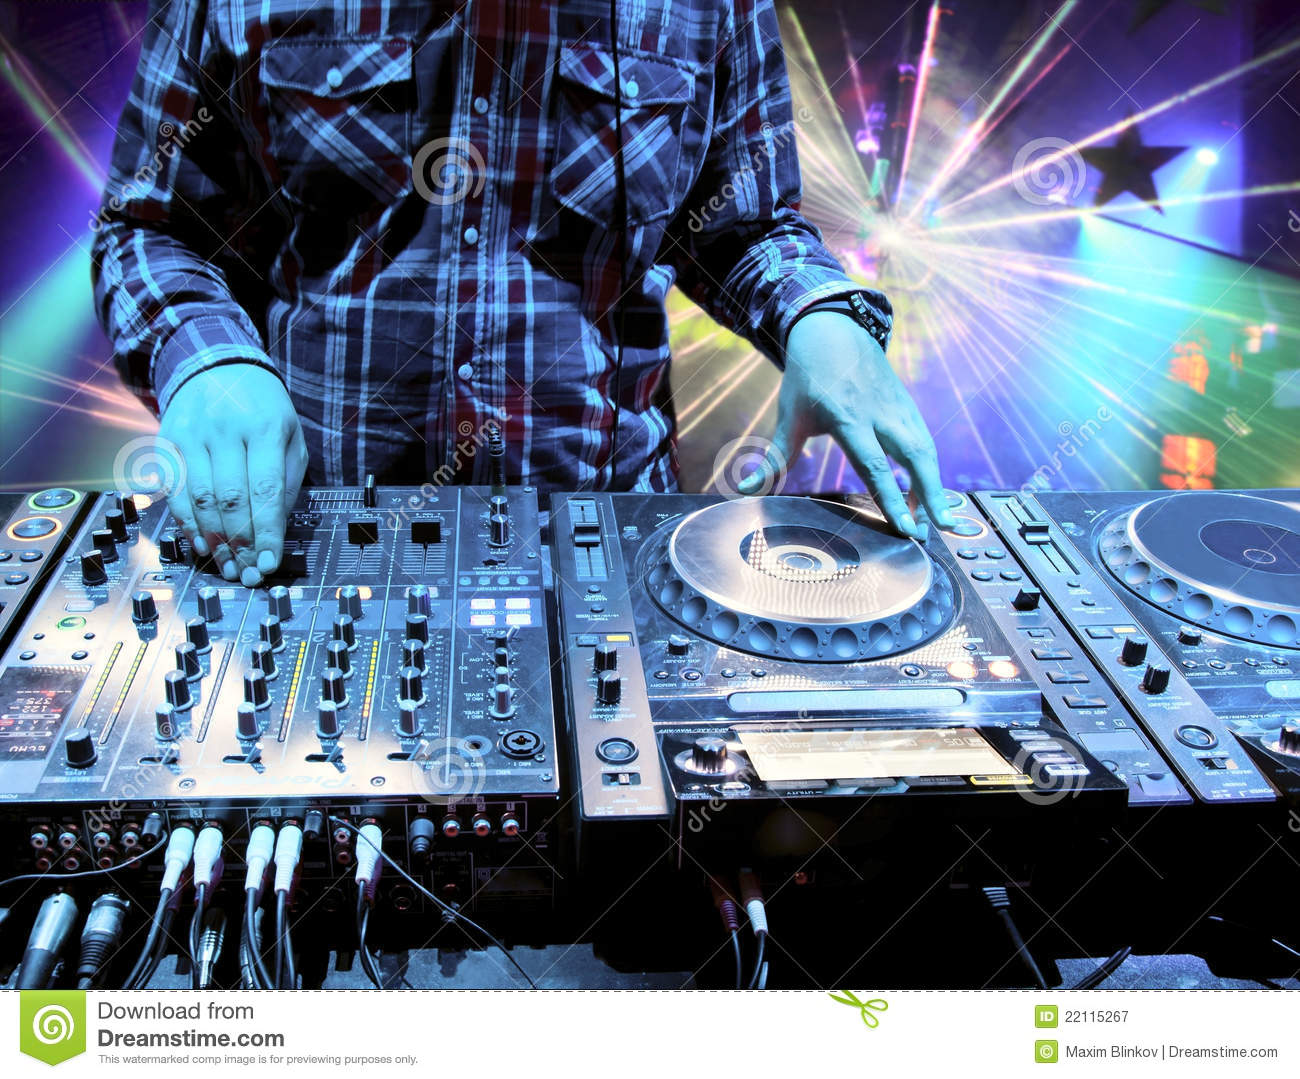 Dj Mixes The Track In The Nightclub Stock Image - Image of